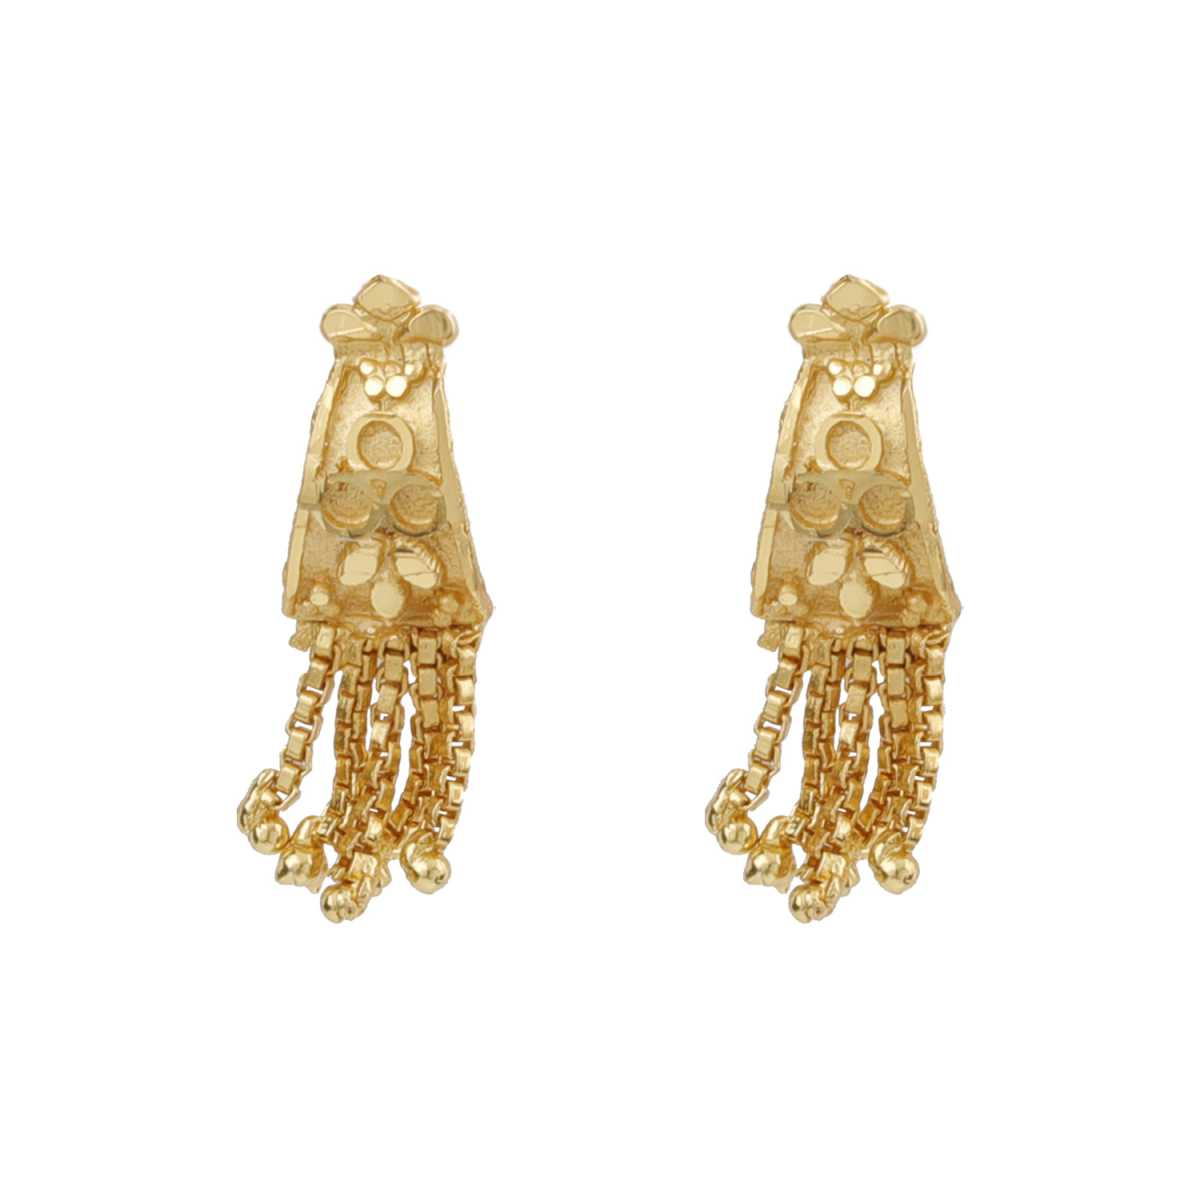 Silver Shine Charming Gold Lovely Traditional Push Back Earring Danglers For Women